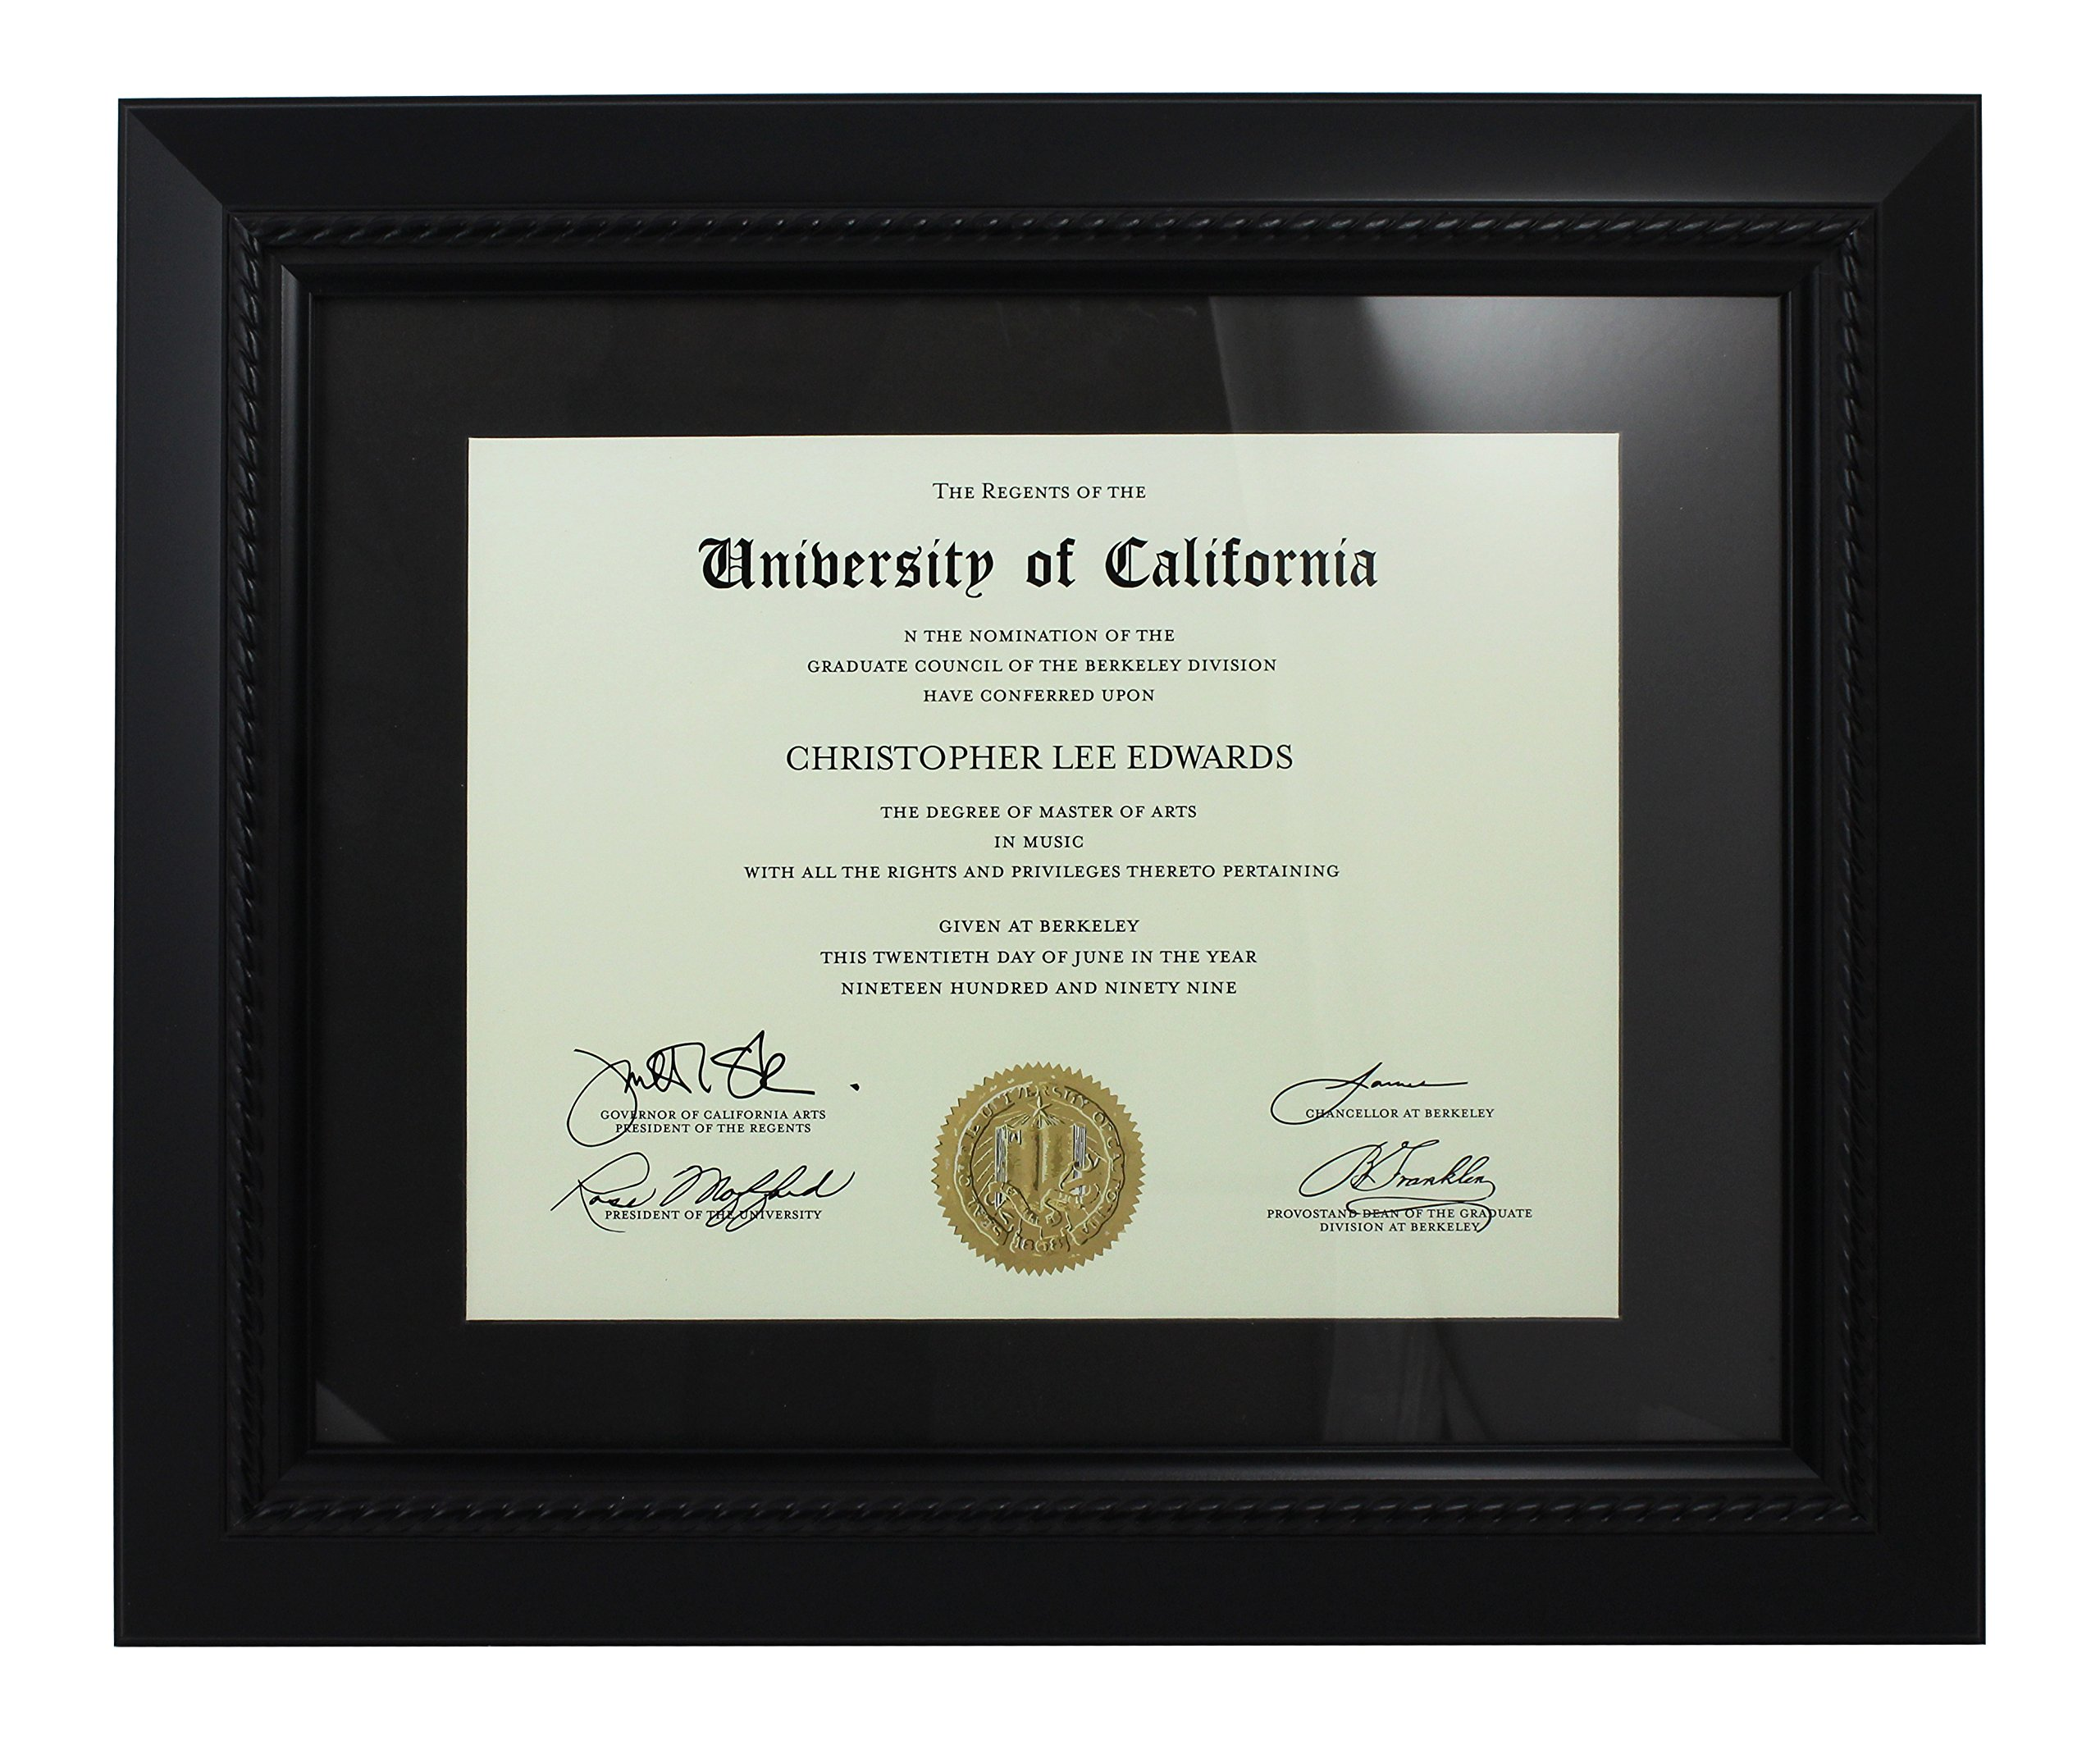 Azzure Home Document Frame - Black with Black Mat Document Frame Made to Display Certificates 8 ½ x 11 Inch Opening to 11 x 14 Inch Frame - Document Frame, Certificate Frame, University Diploma Frame